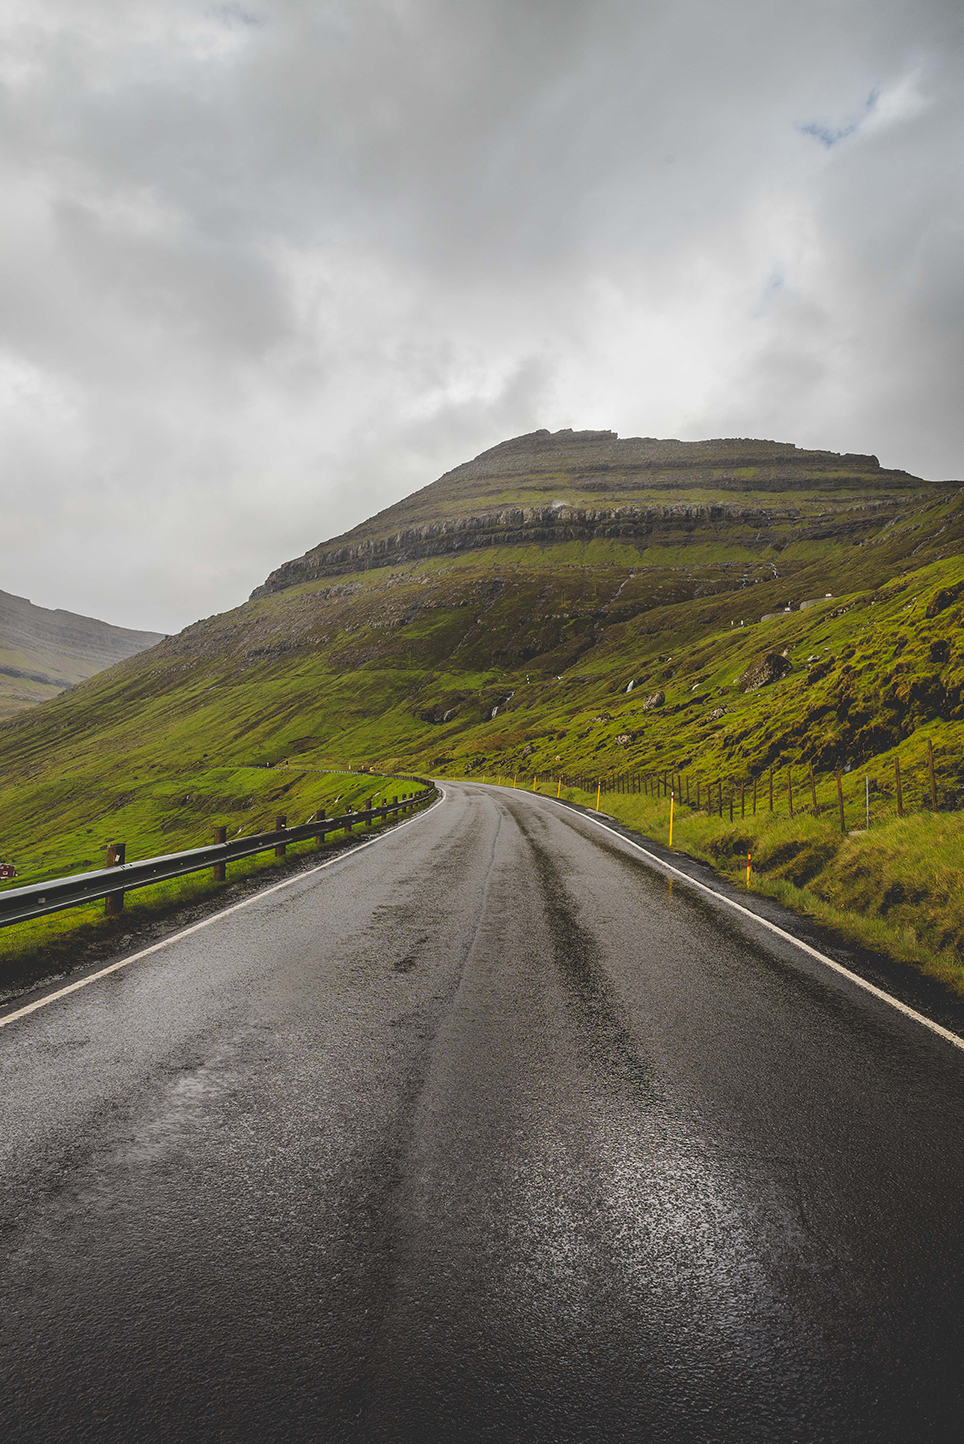 FaroeIslands_Day2_23-6-17_TAL-75.jpg